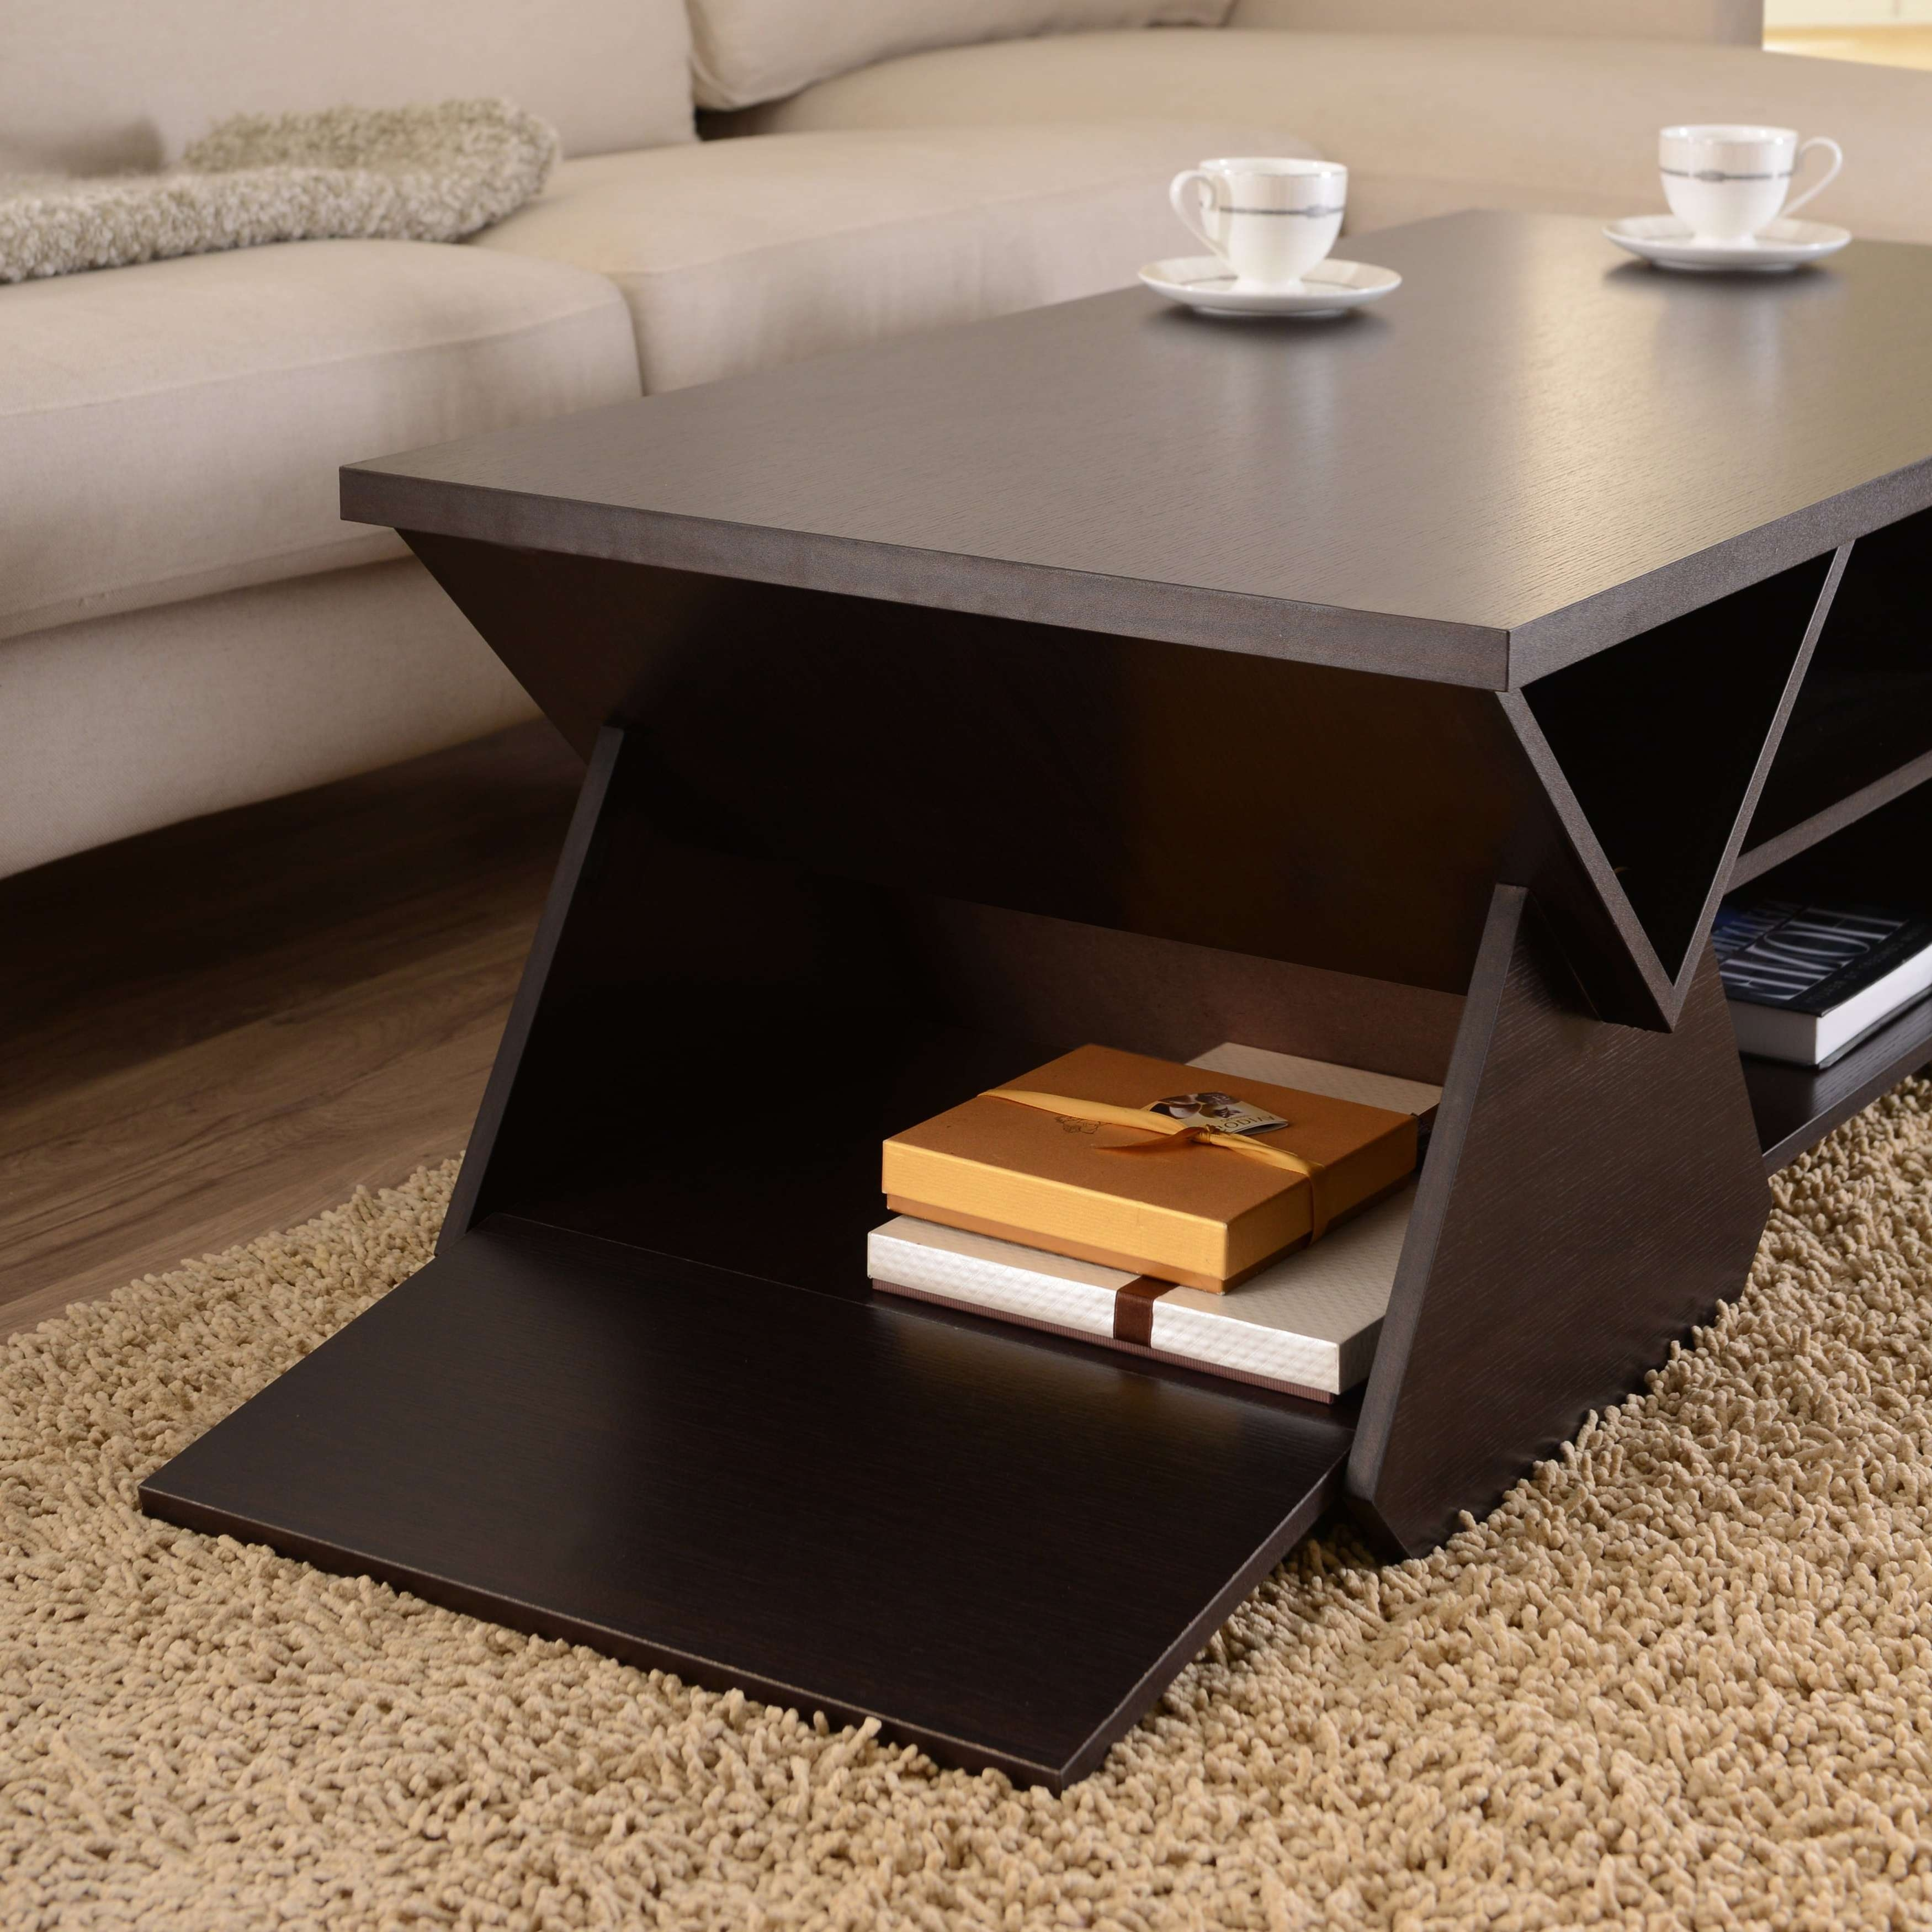 Furniture Of America Melika Espresso Geometric Coffee Table – Free With Regard To Most Recent Desk Coffee Tables (View 6 of 20)